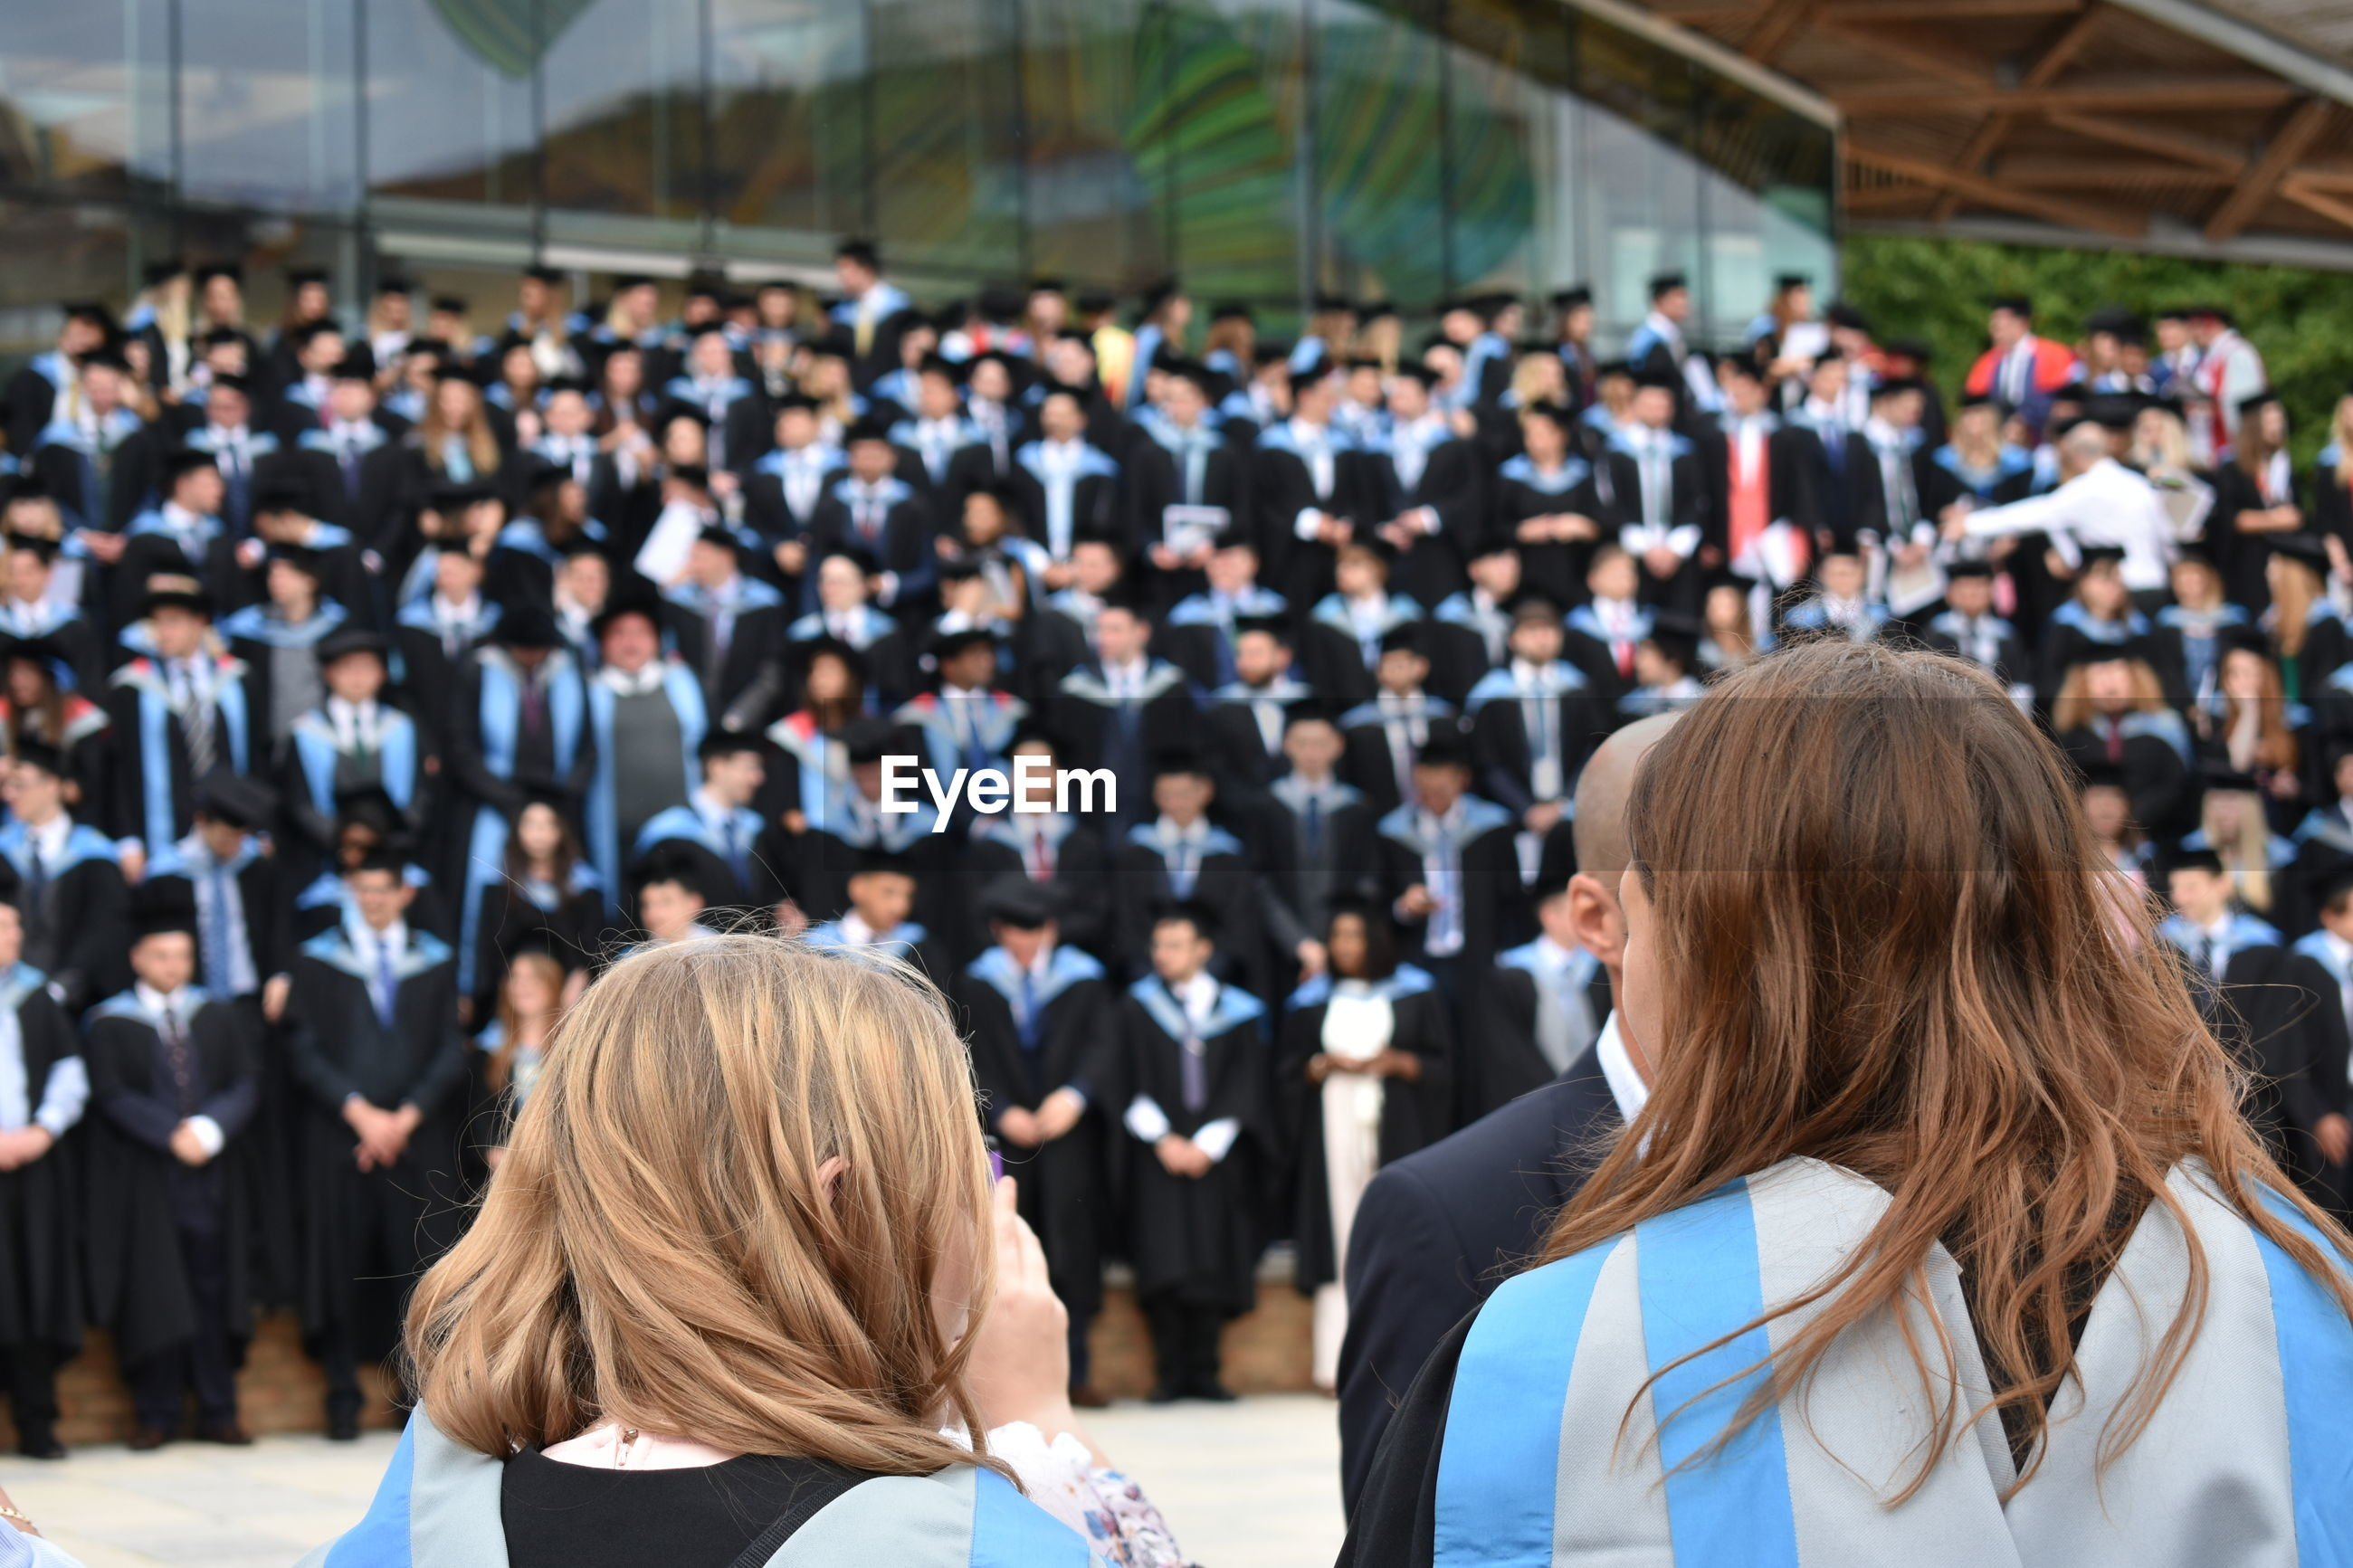 Students during graduation event